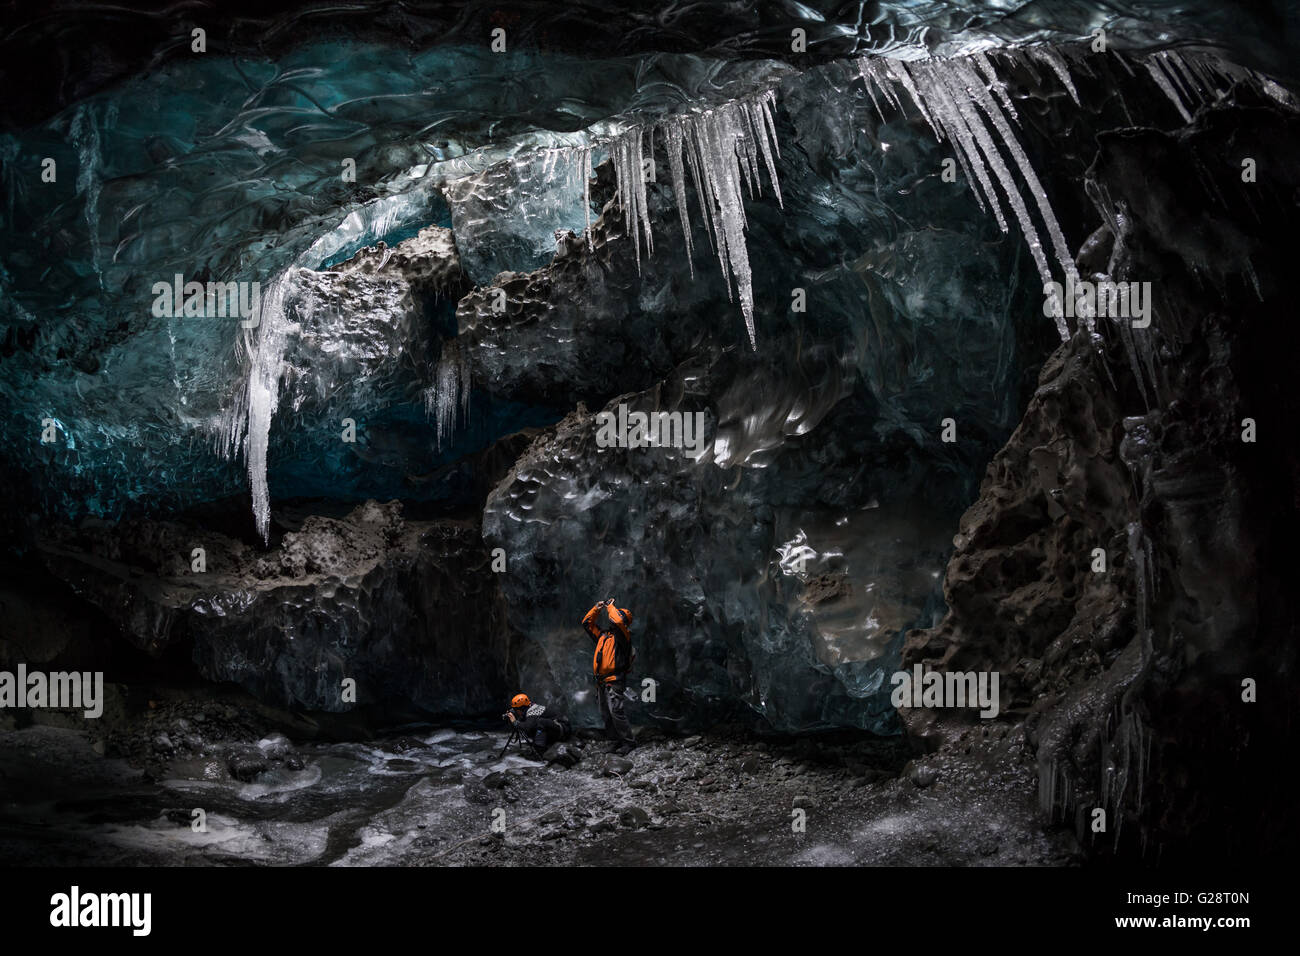 Tourists photographing in an ice cave, Vatnajokull, Iceland - Stock Image